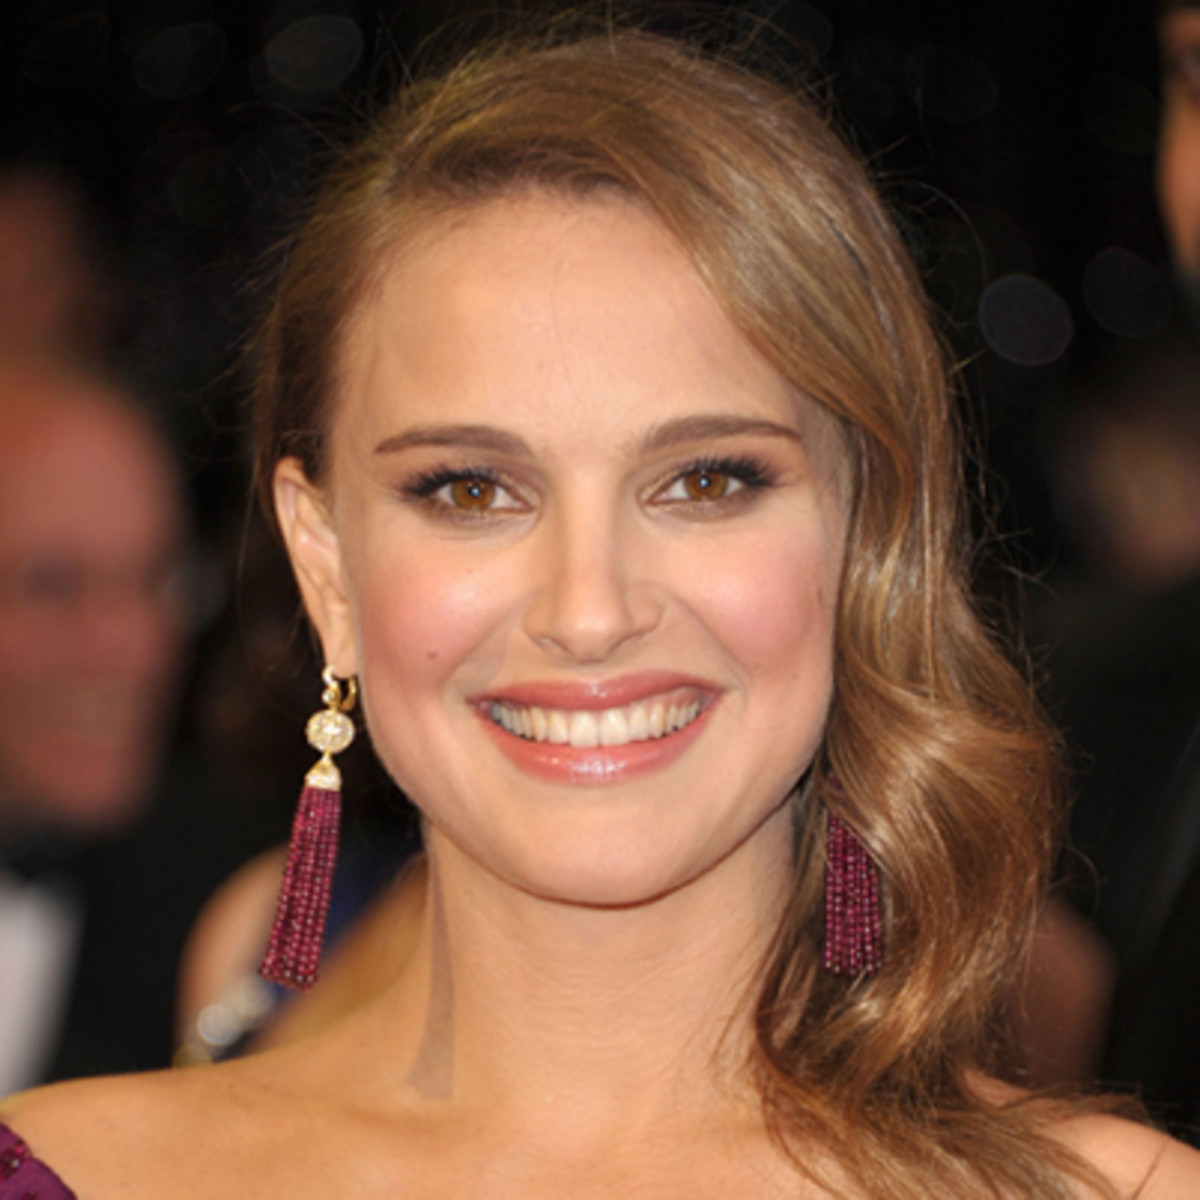 natalie-portman-age-height-weight